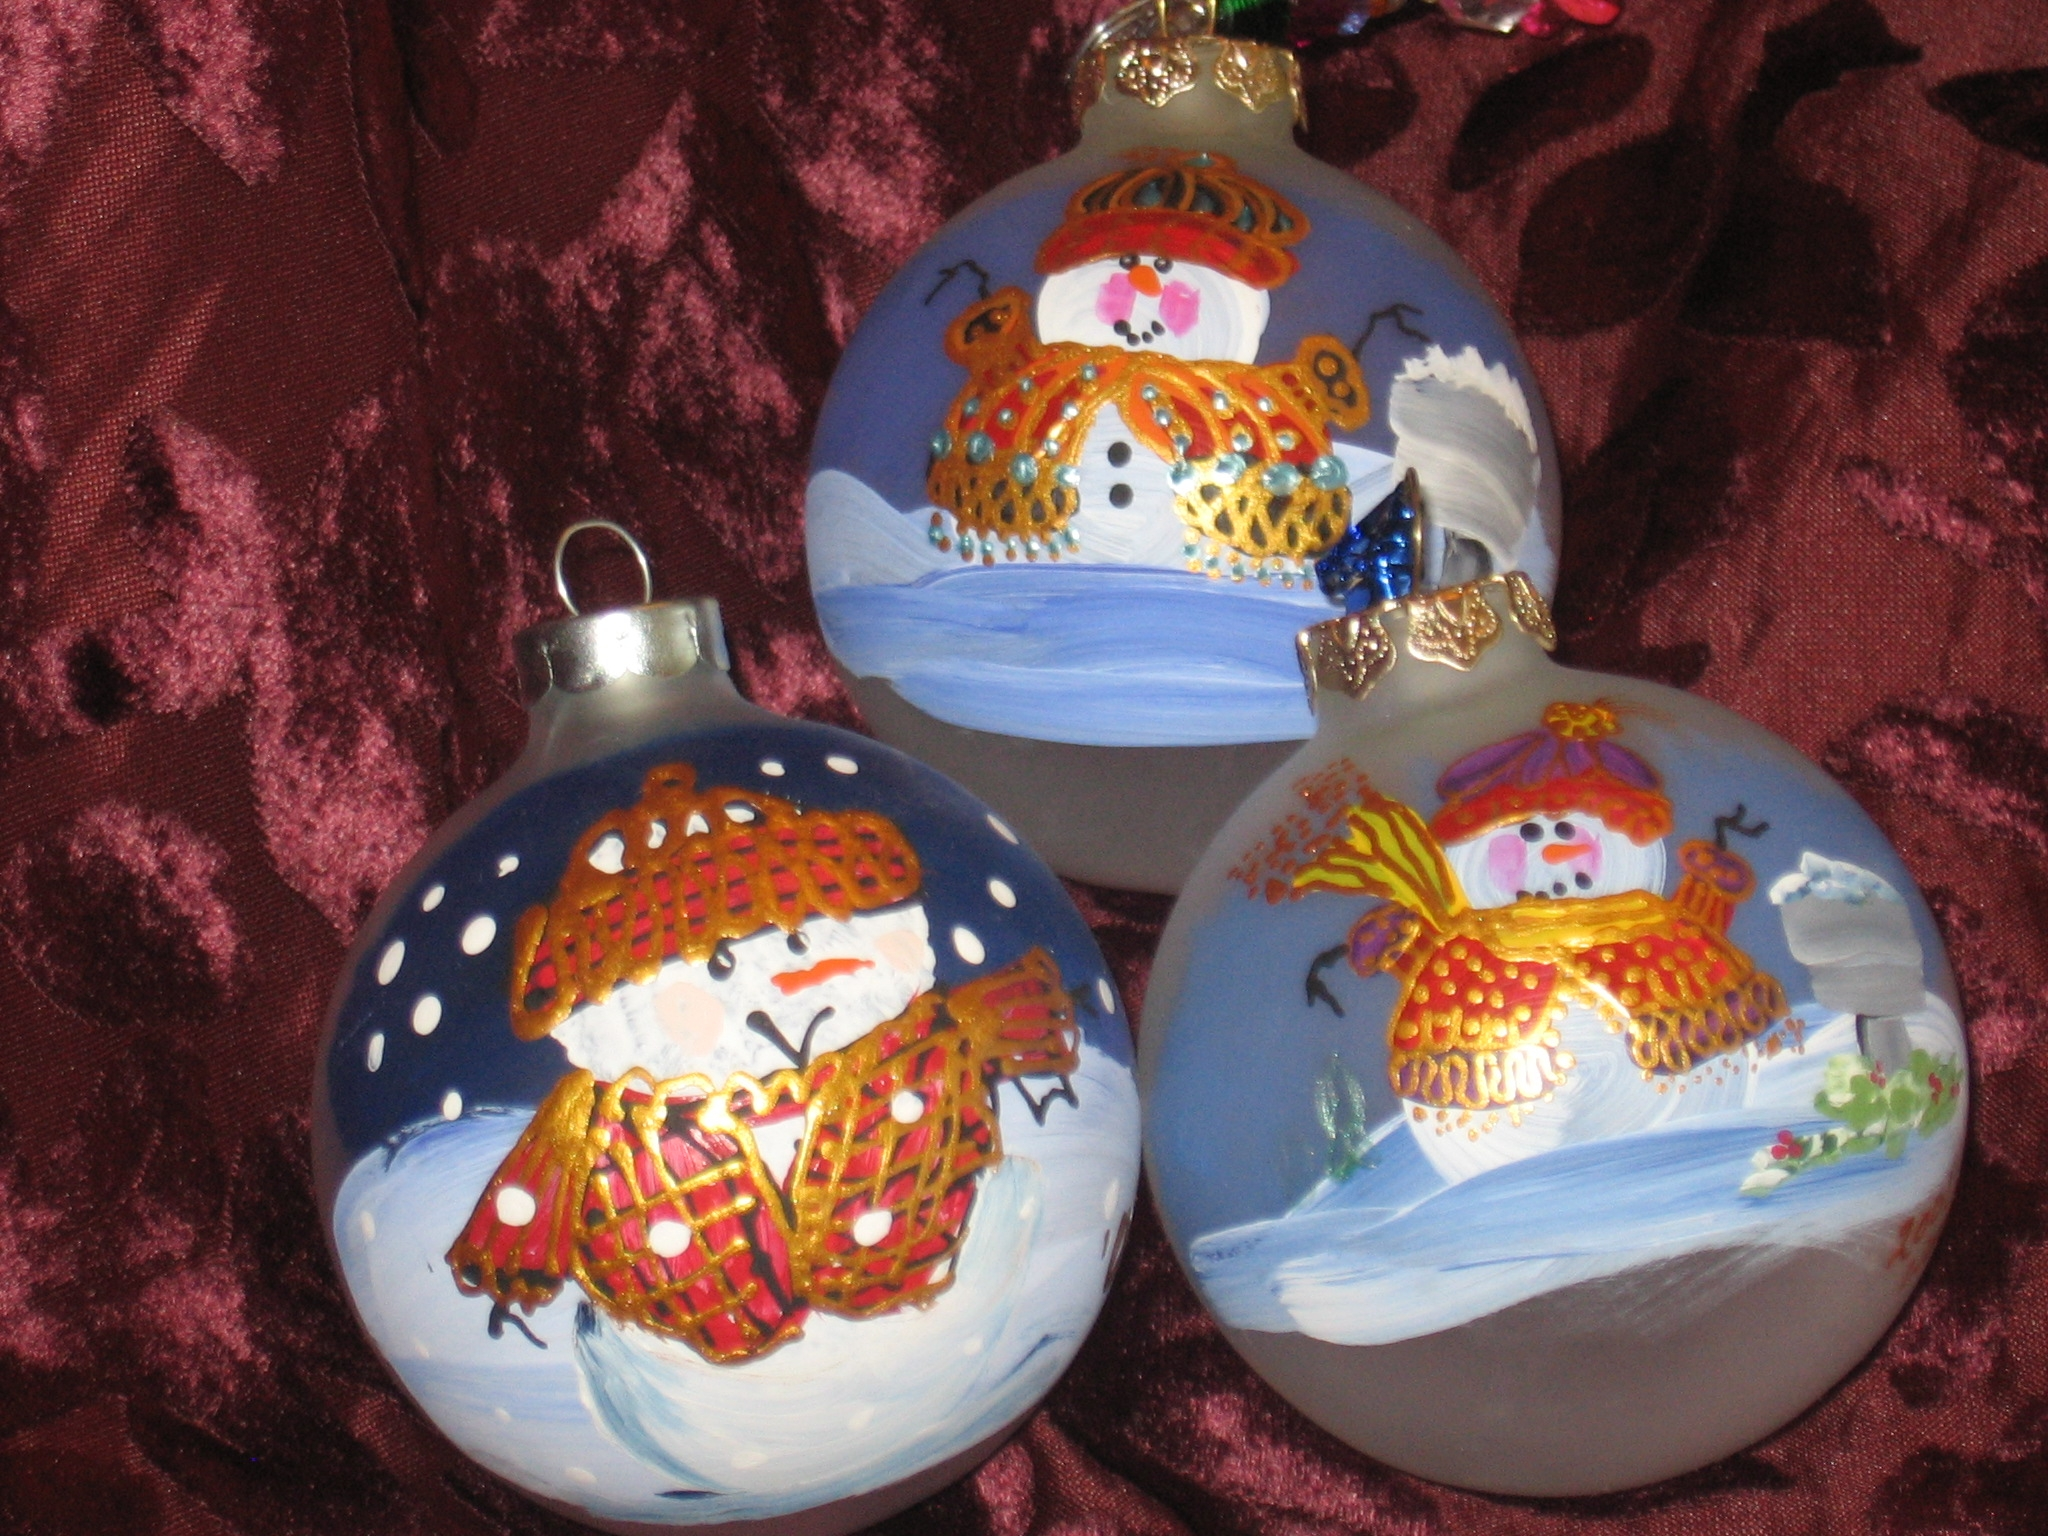 http://villageofwhimsy.com/yahoo_site_admin/assets/images/Christmas_Balls.16661737.JPG